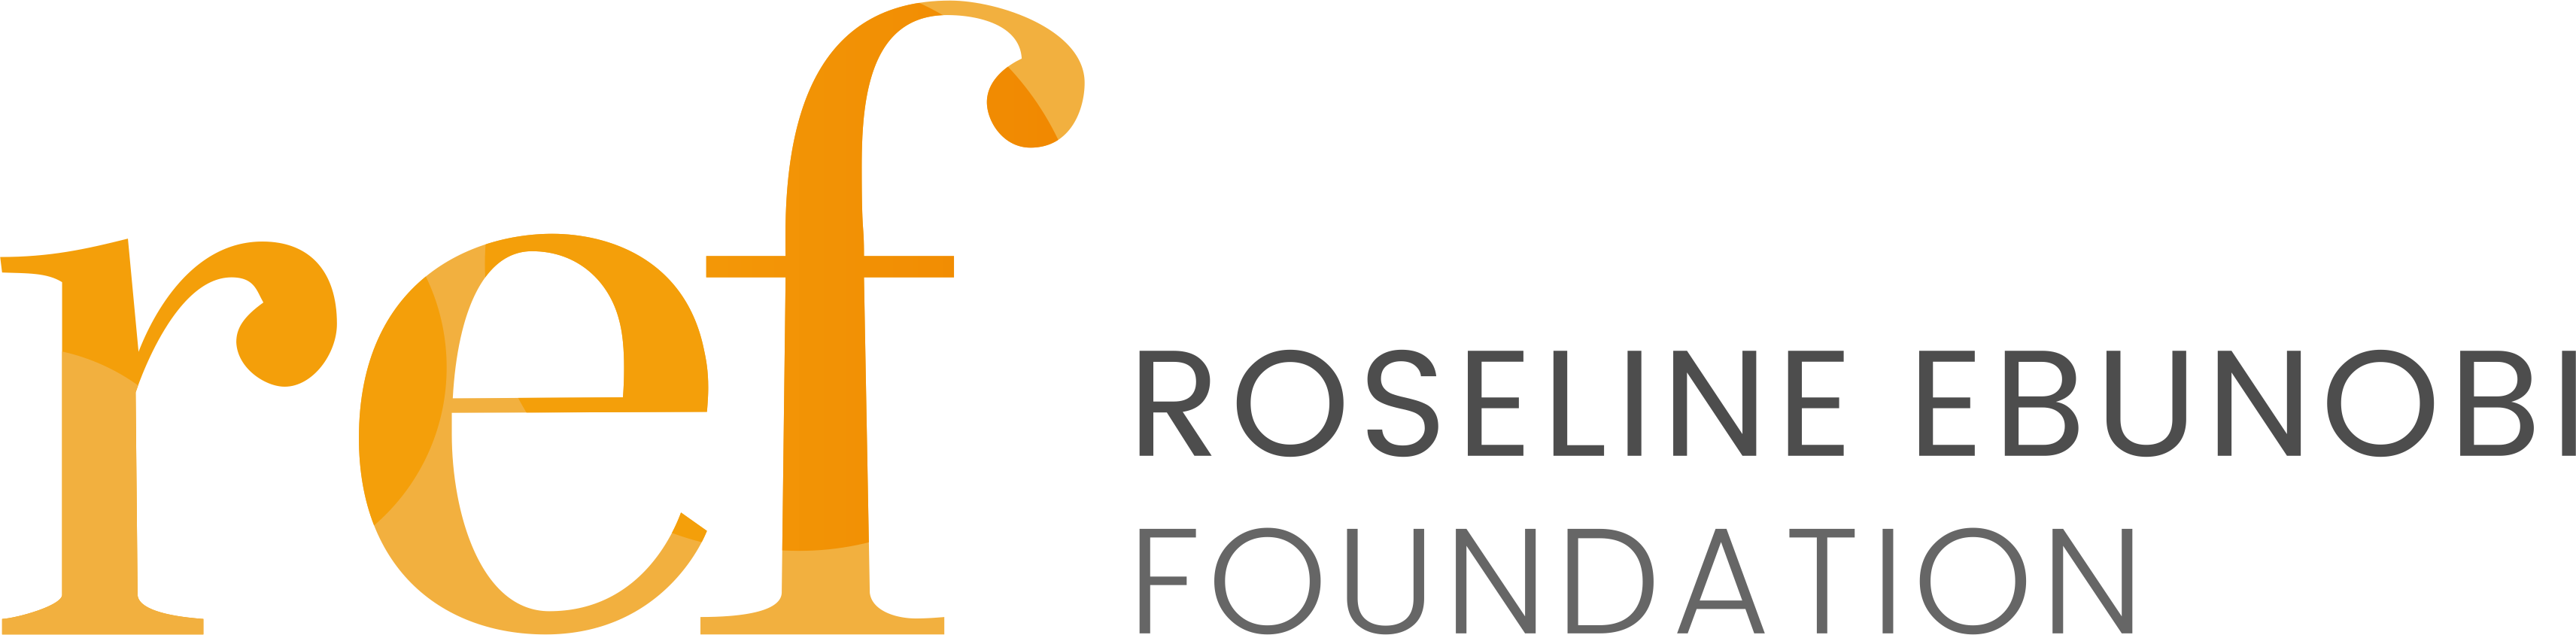 Roseline Ebunobi Foundation